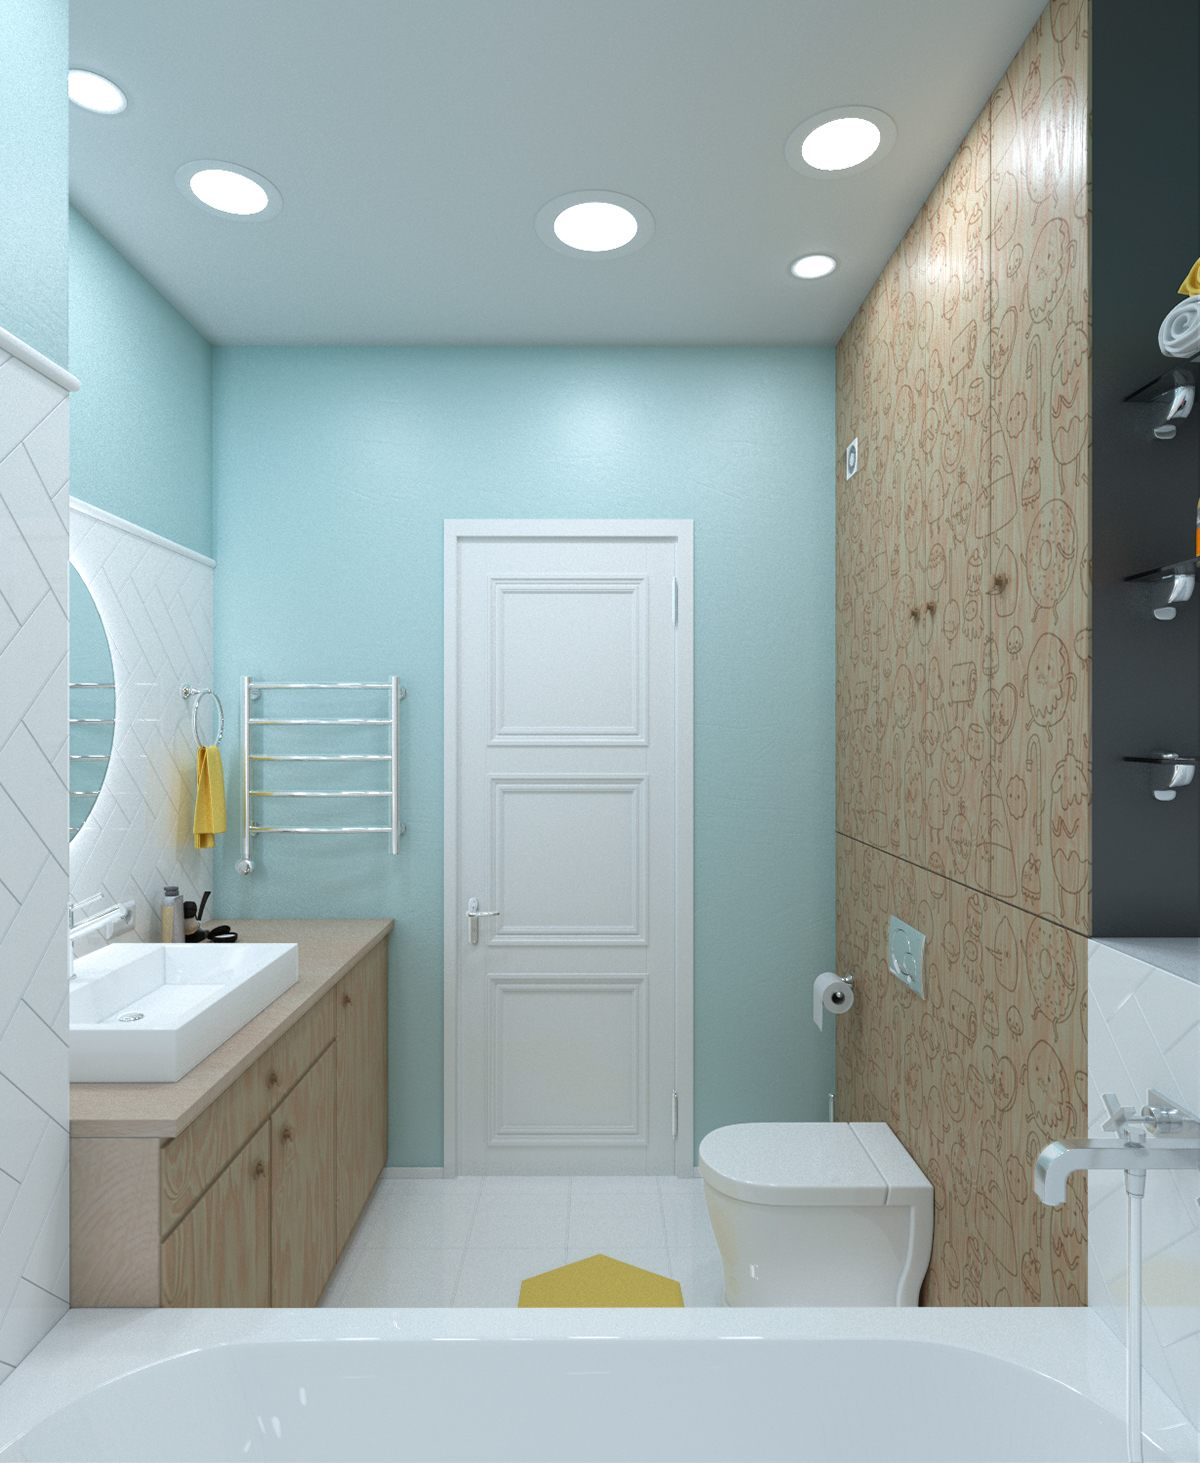 light-blue-and-yellow-bathroom-theme